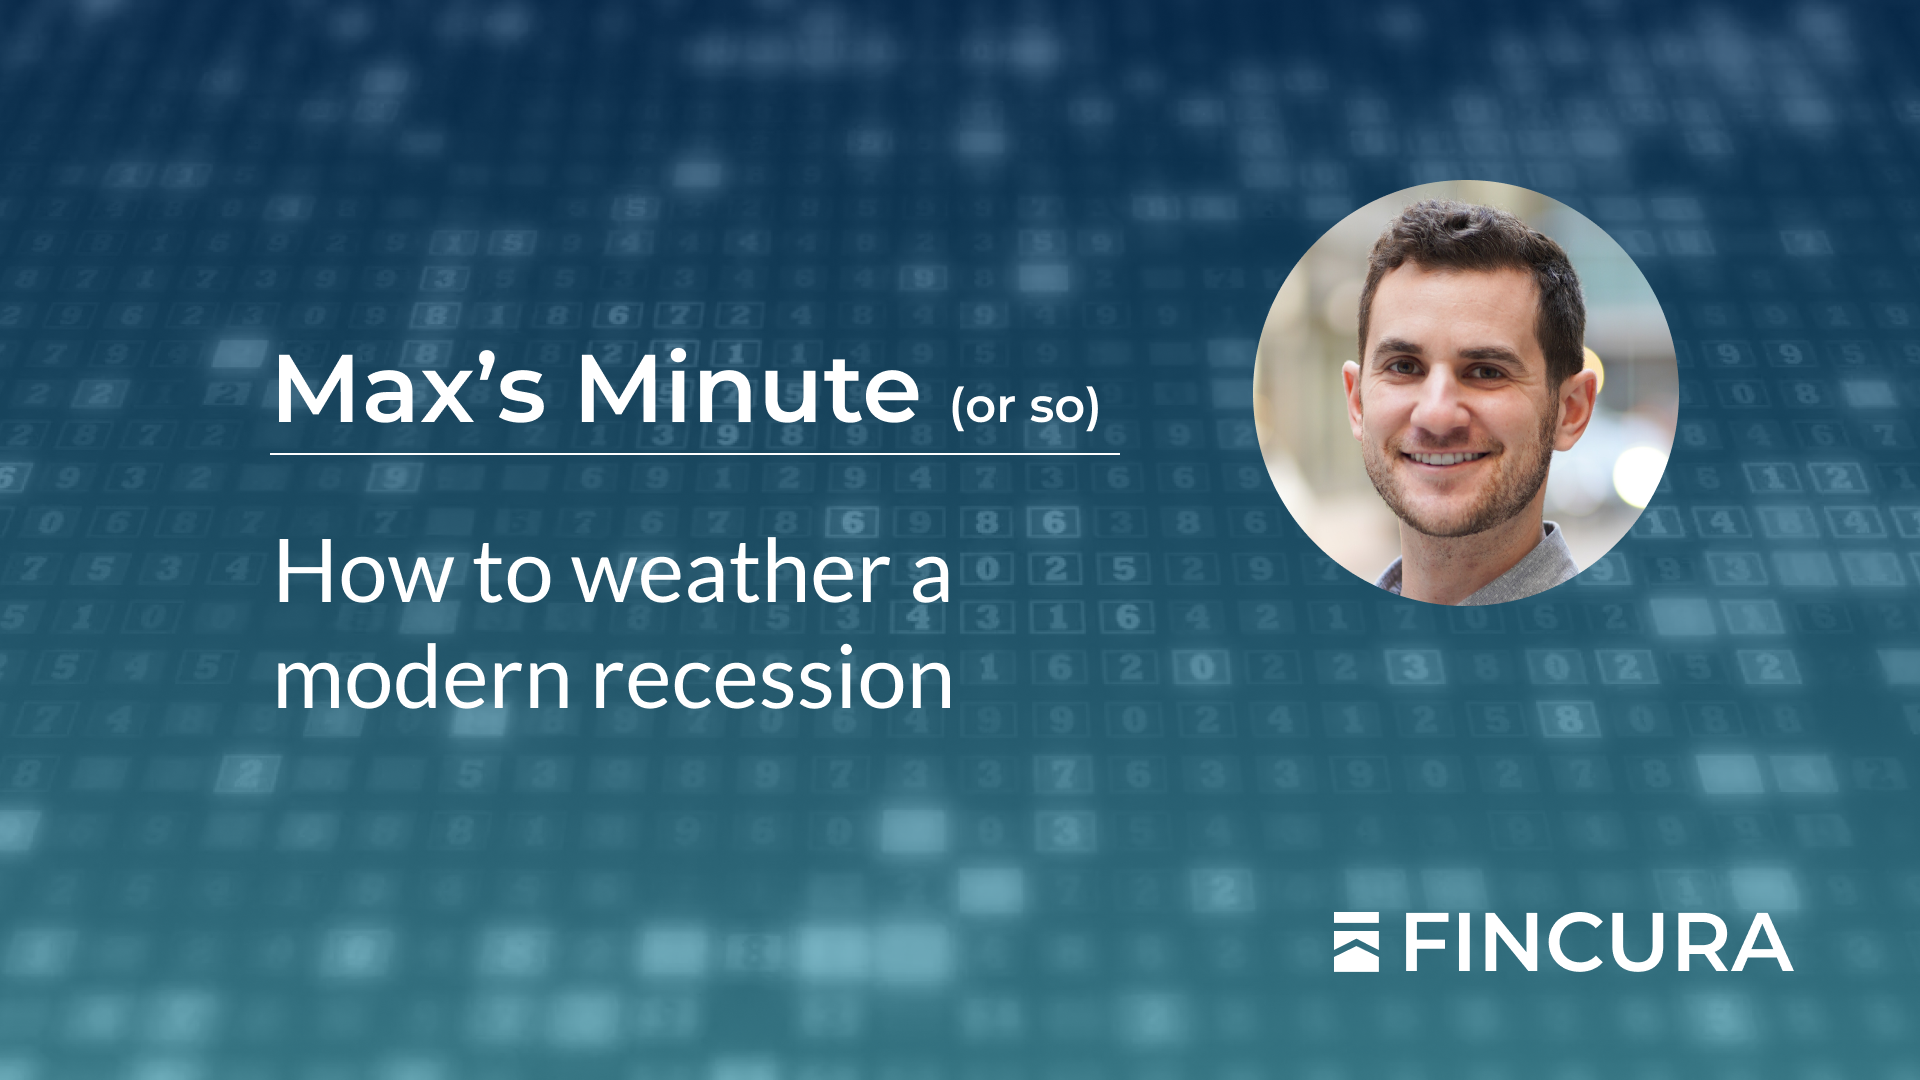 Fincura | How to weather a modern recession